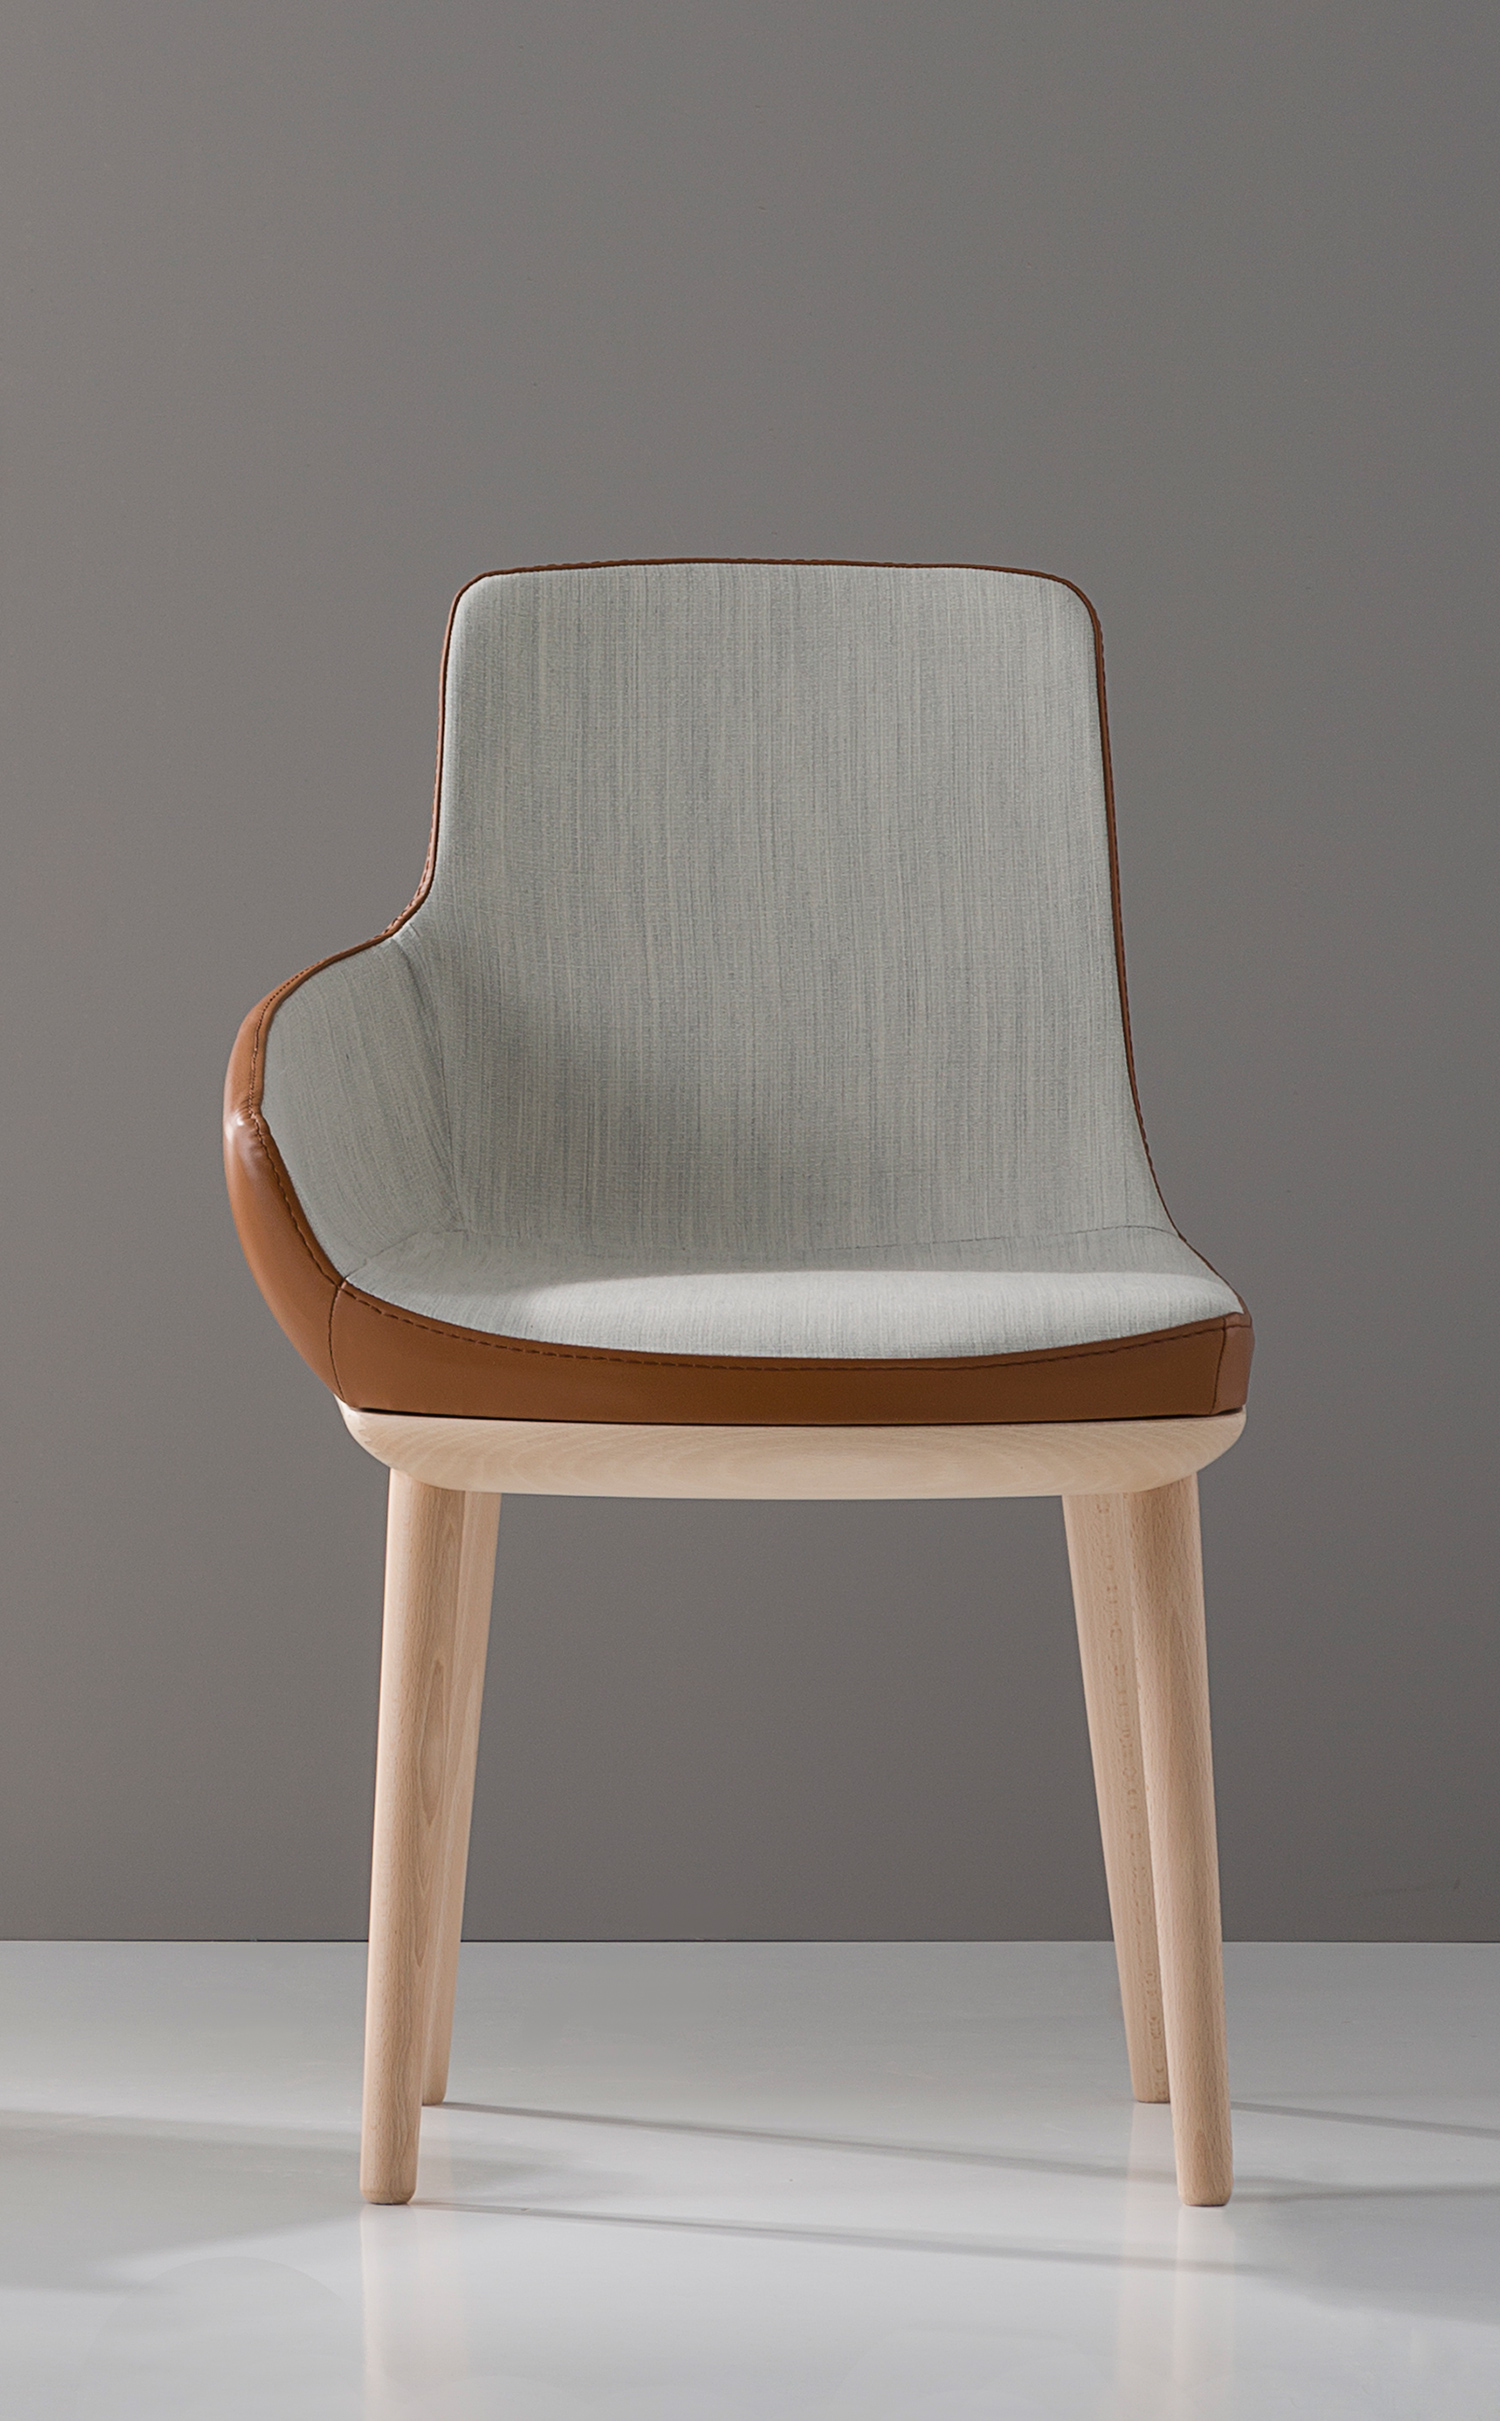 Ego Armchair by Alegre Design for B&V - Sohomod Blog